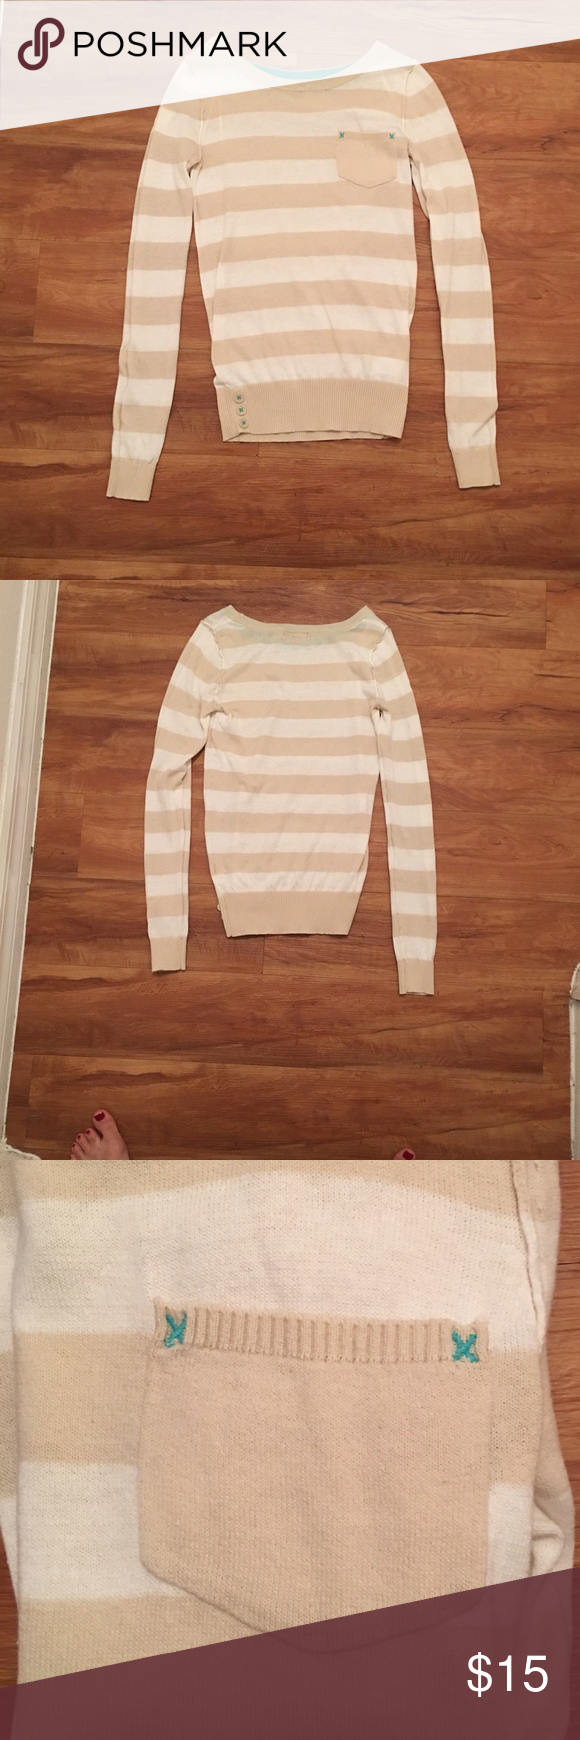 Long sleeve shirt Very comfortable shirt! In perfect condition! Tops Tees - Long Sleeve